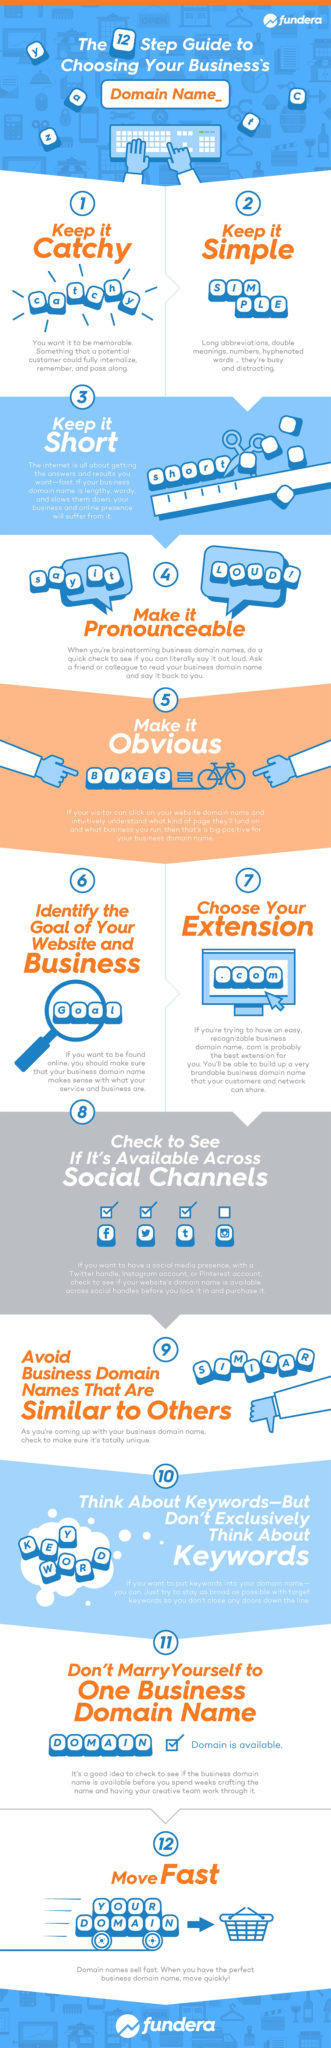 Lincoln NE Web Design and Development - 12-Steps-to-Choosing-the-Best-Domain-Name-for-Your-Business-1